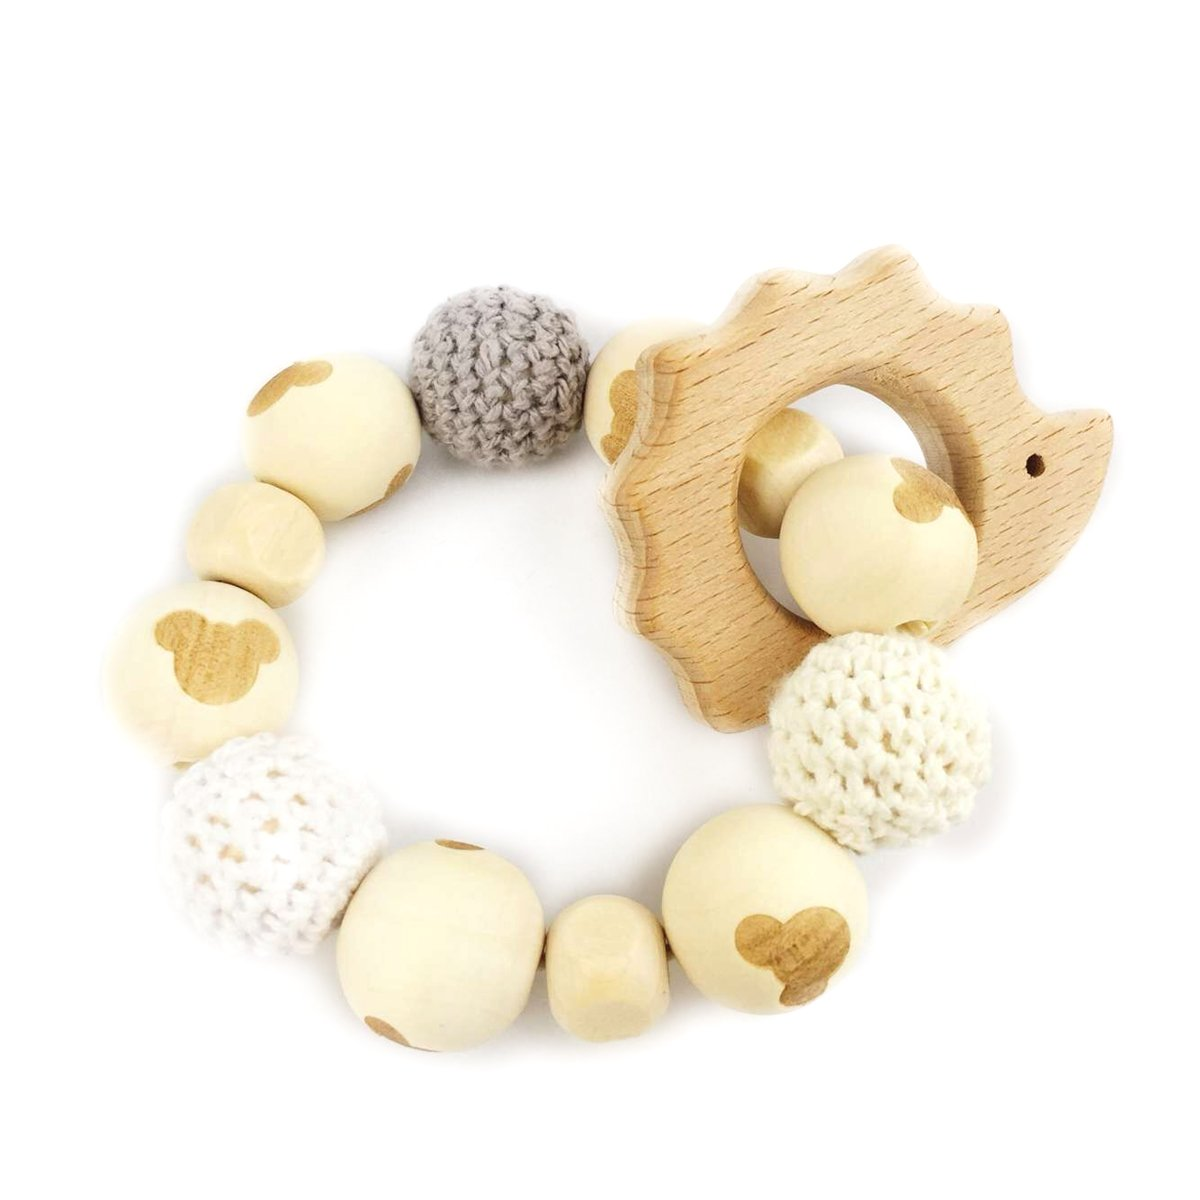 Hedgehog Wooden Teether Chew Beads Baby Rattle Teether Nattural Raw Crochet Beads Toy Mom Ecofriendly Baby Teething (Hedgehog)